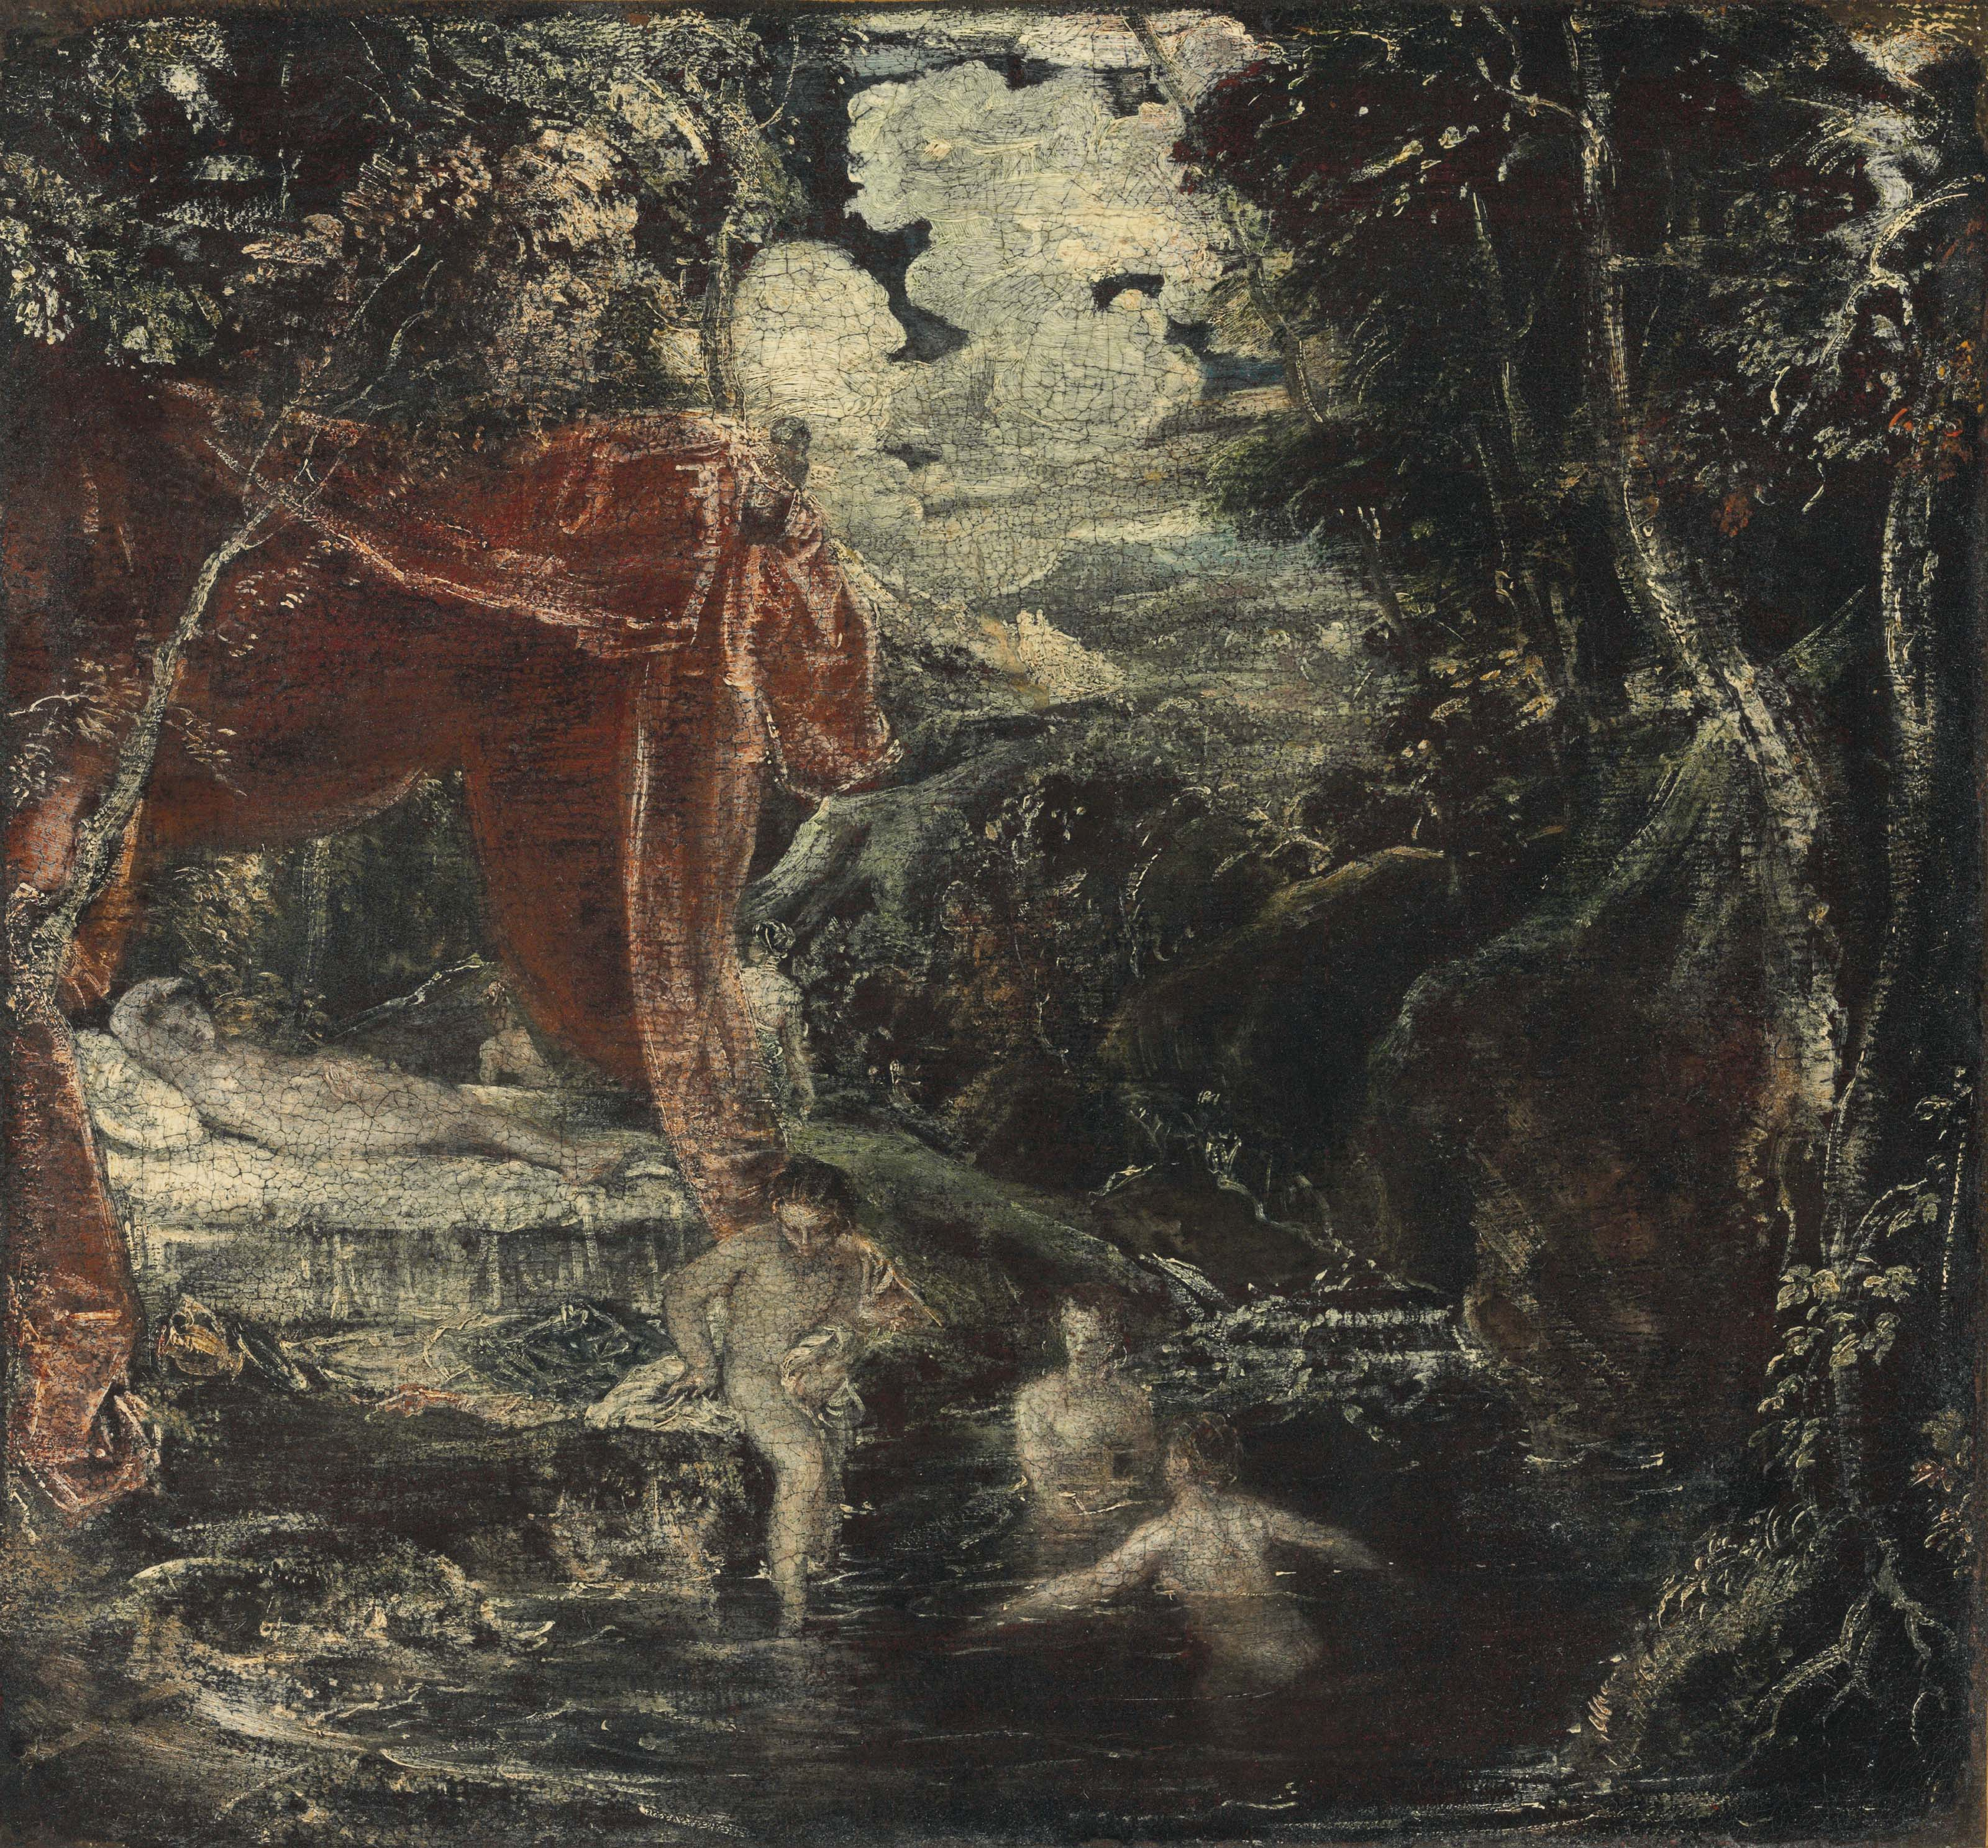 A wooded landscape with Diana and her nymphs bathing in a rocky pool